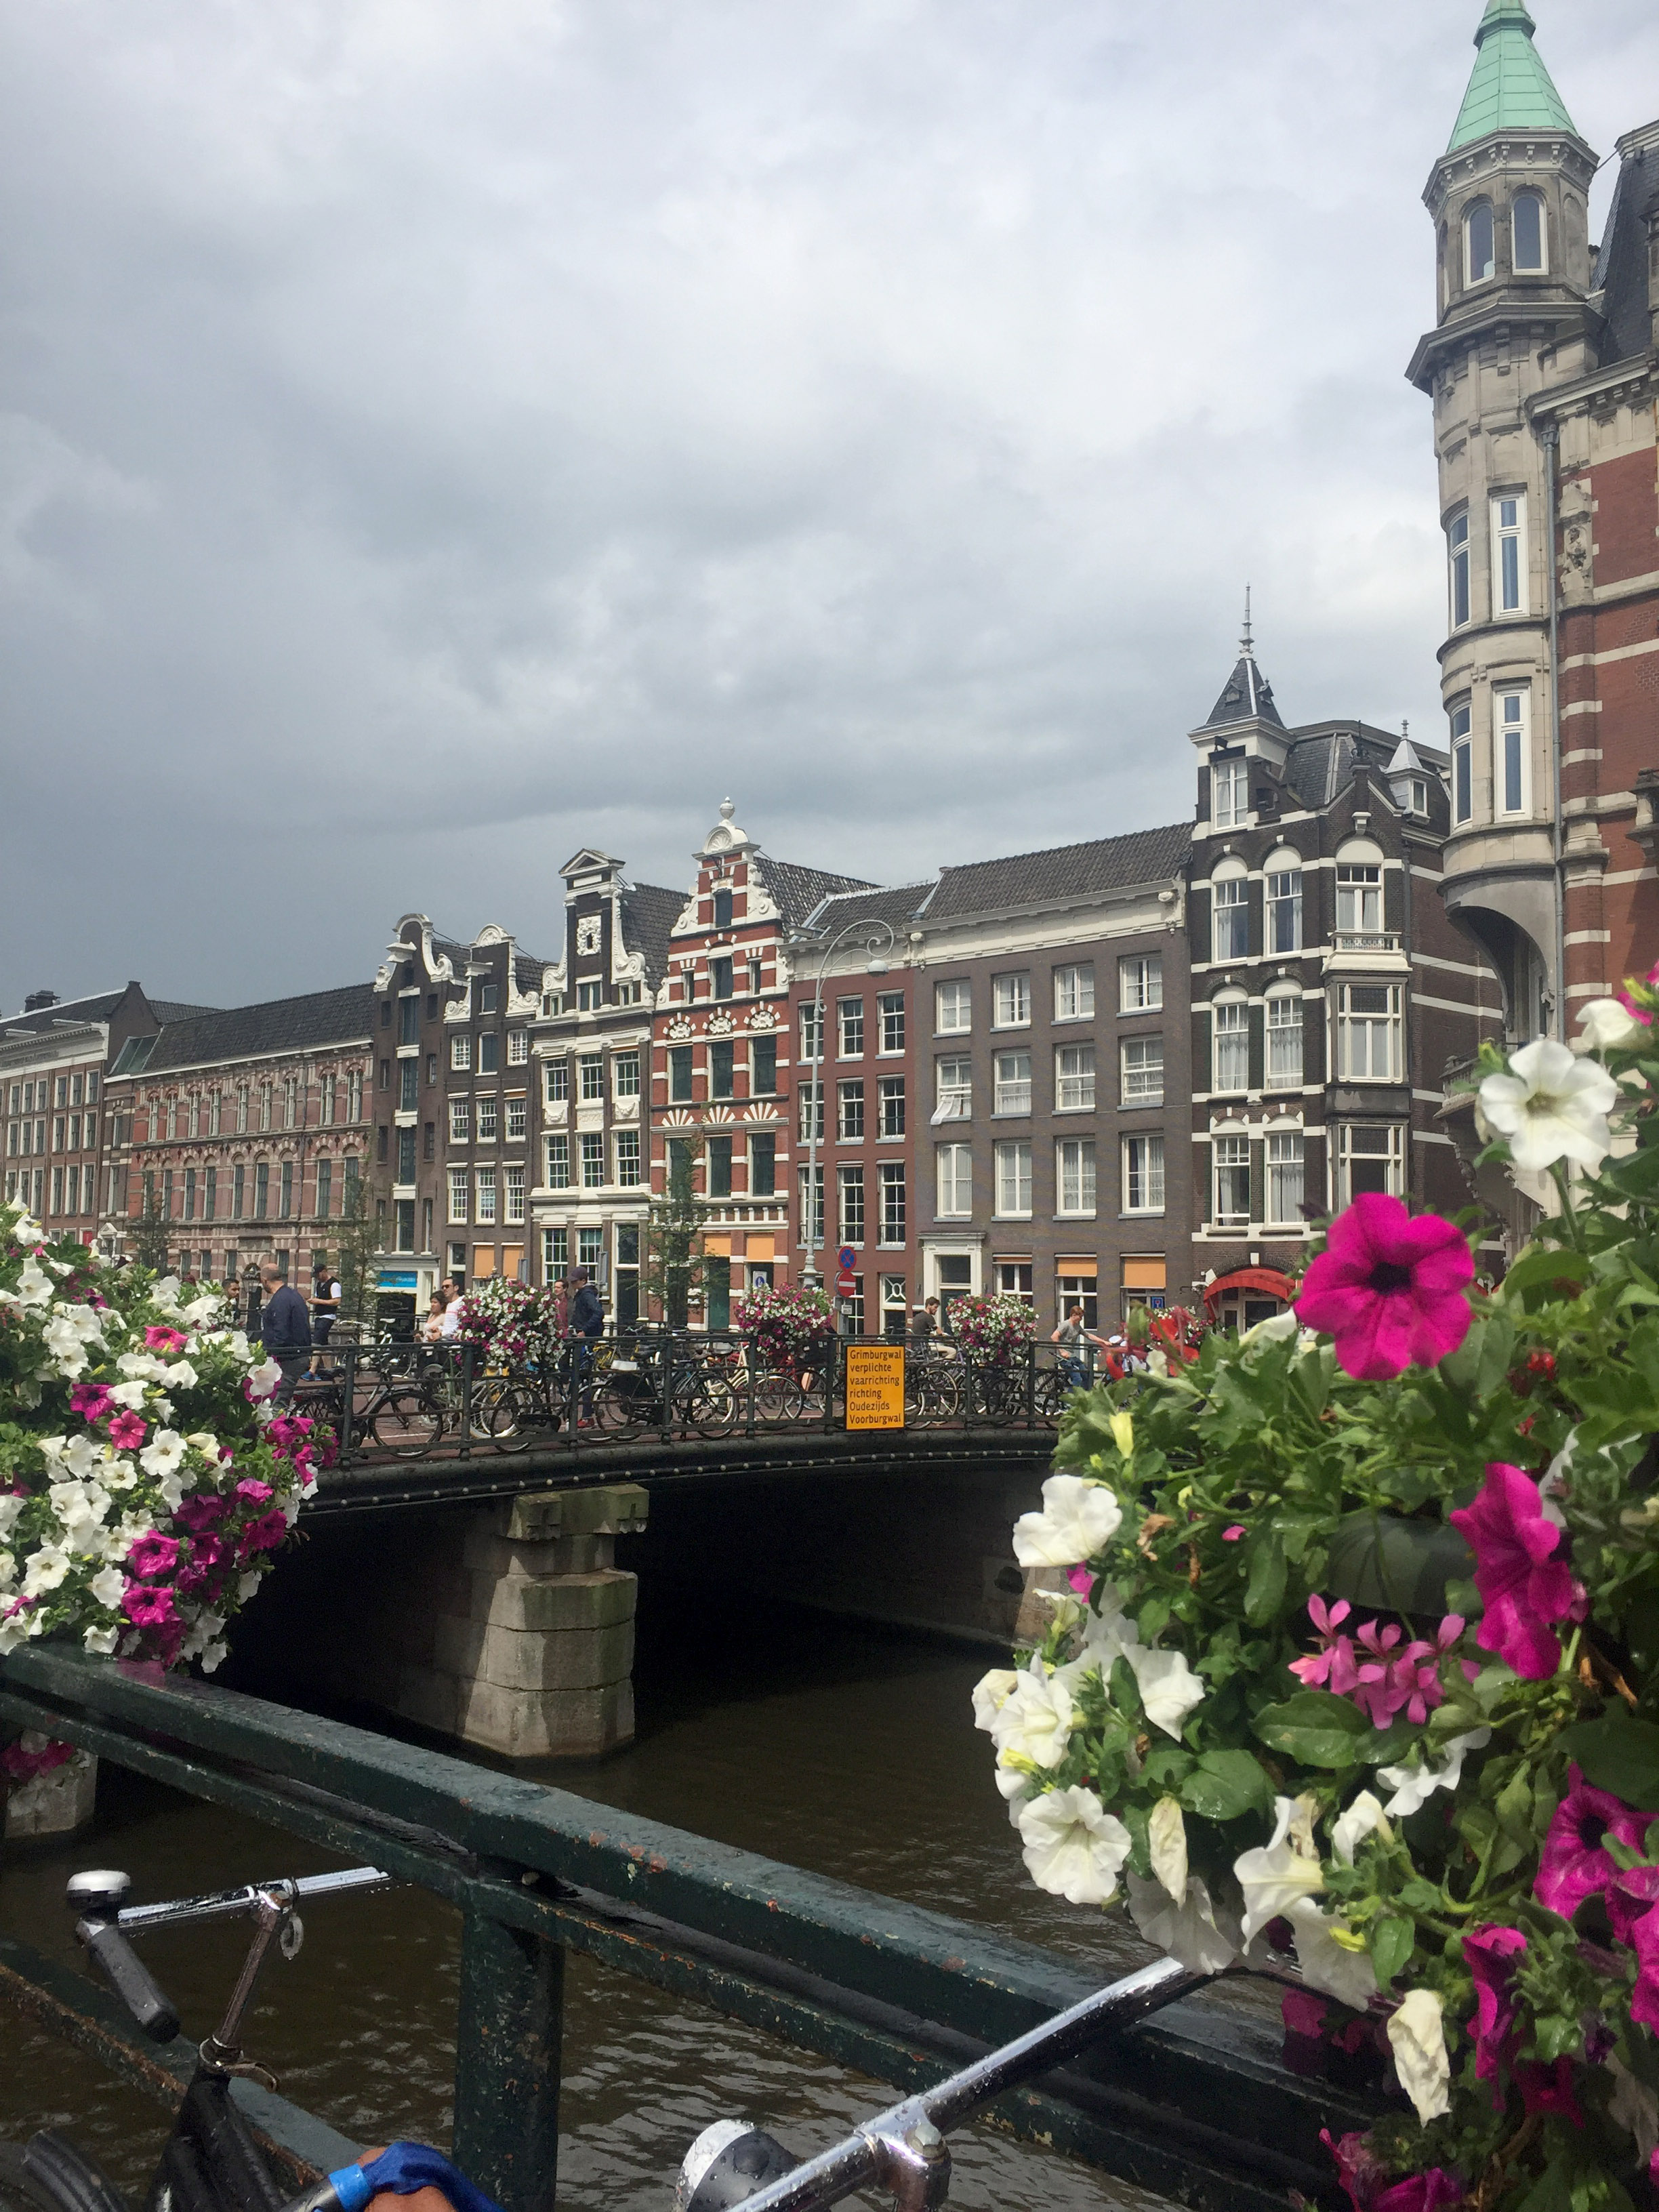 We flew into Amsterdam and spent our first day exploring the historic portion of the city.